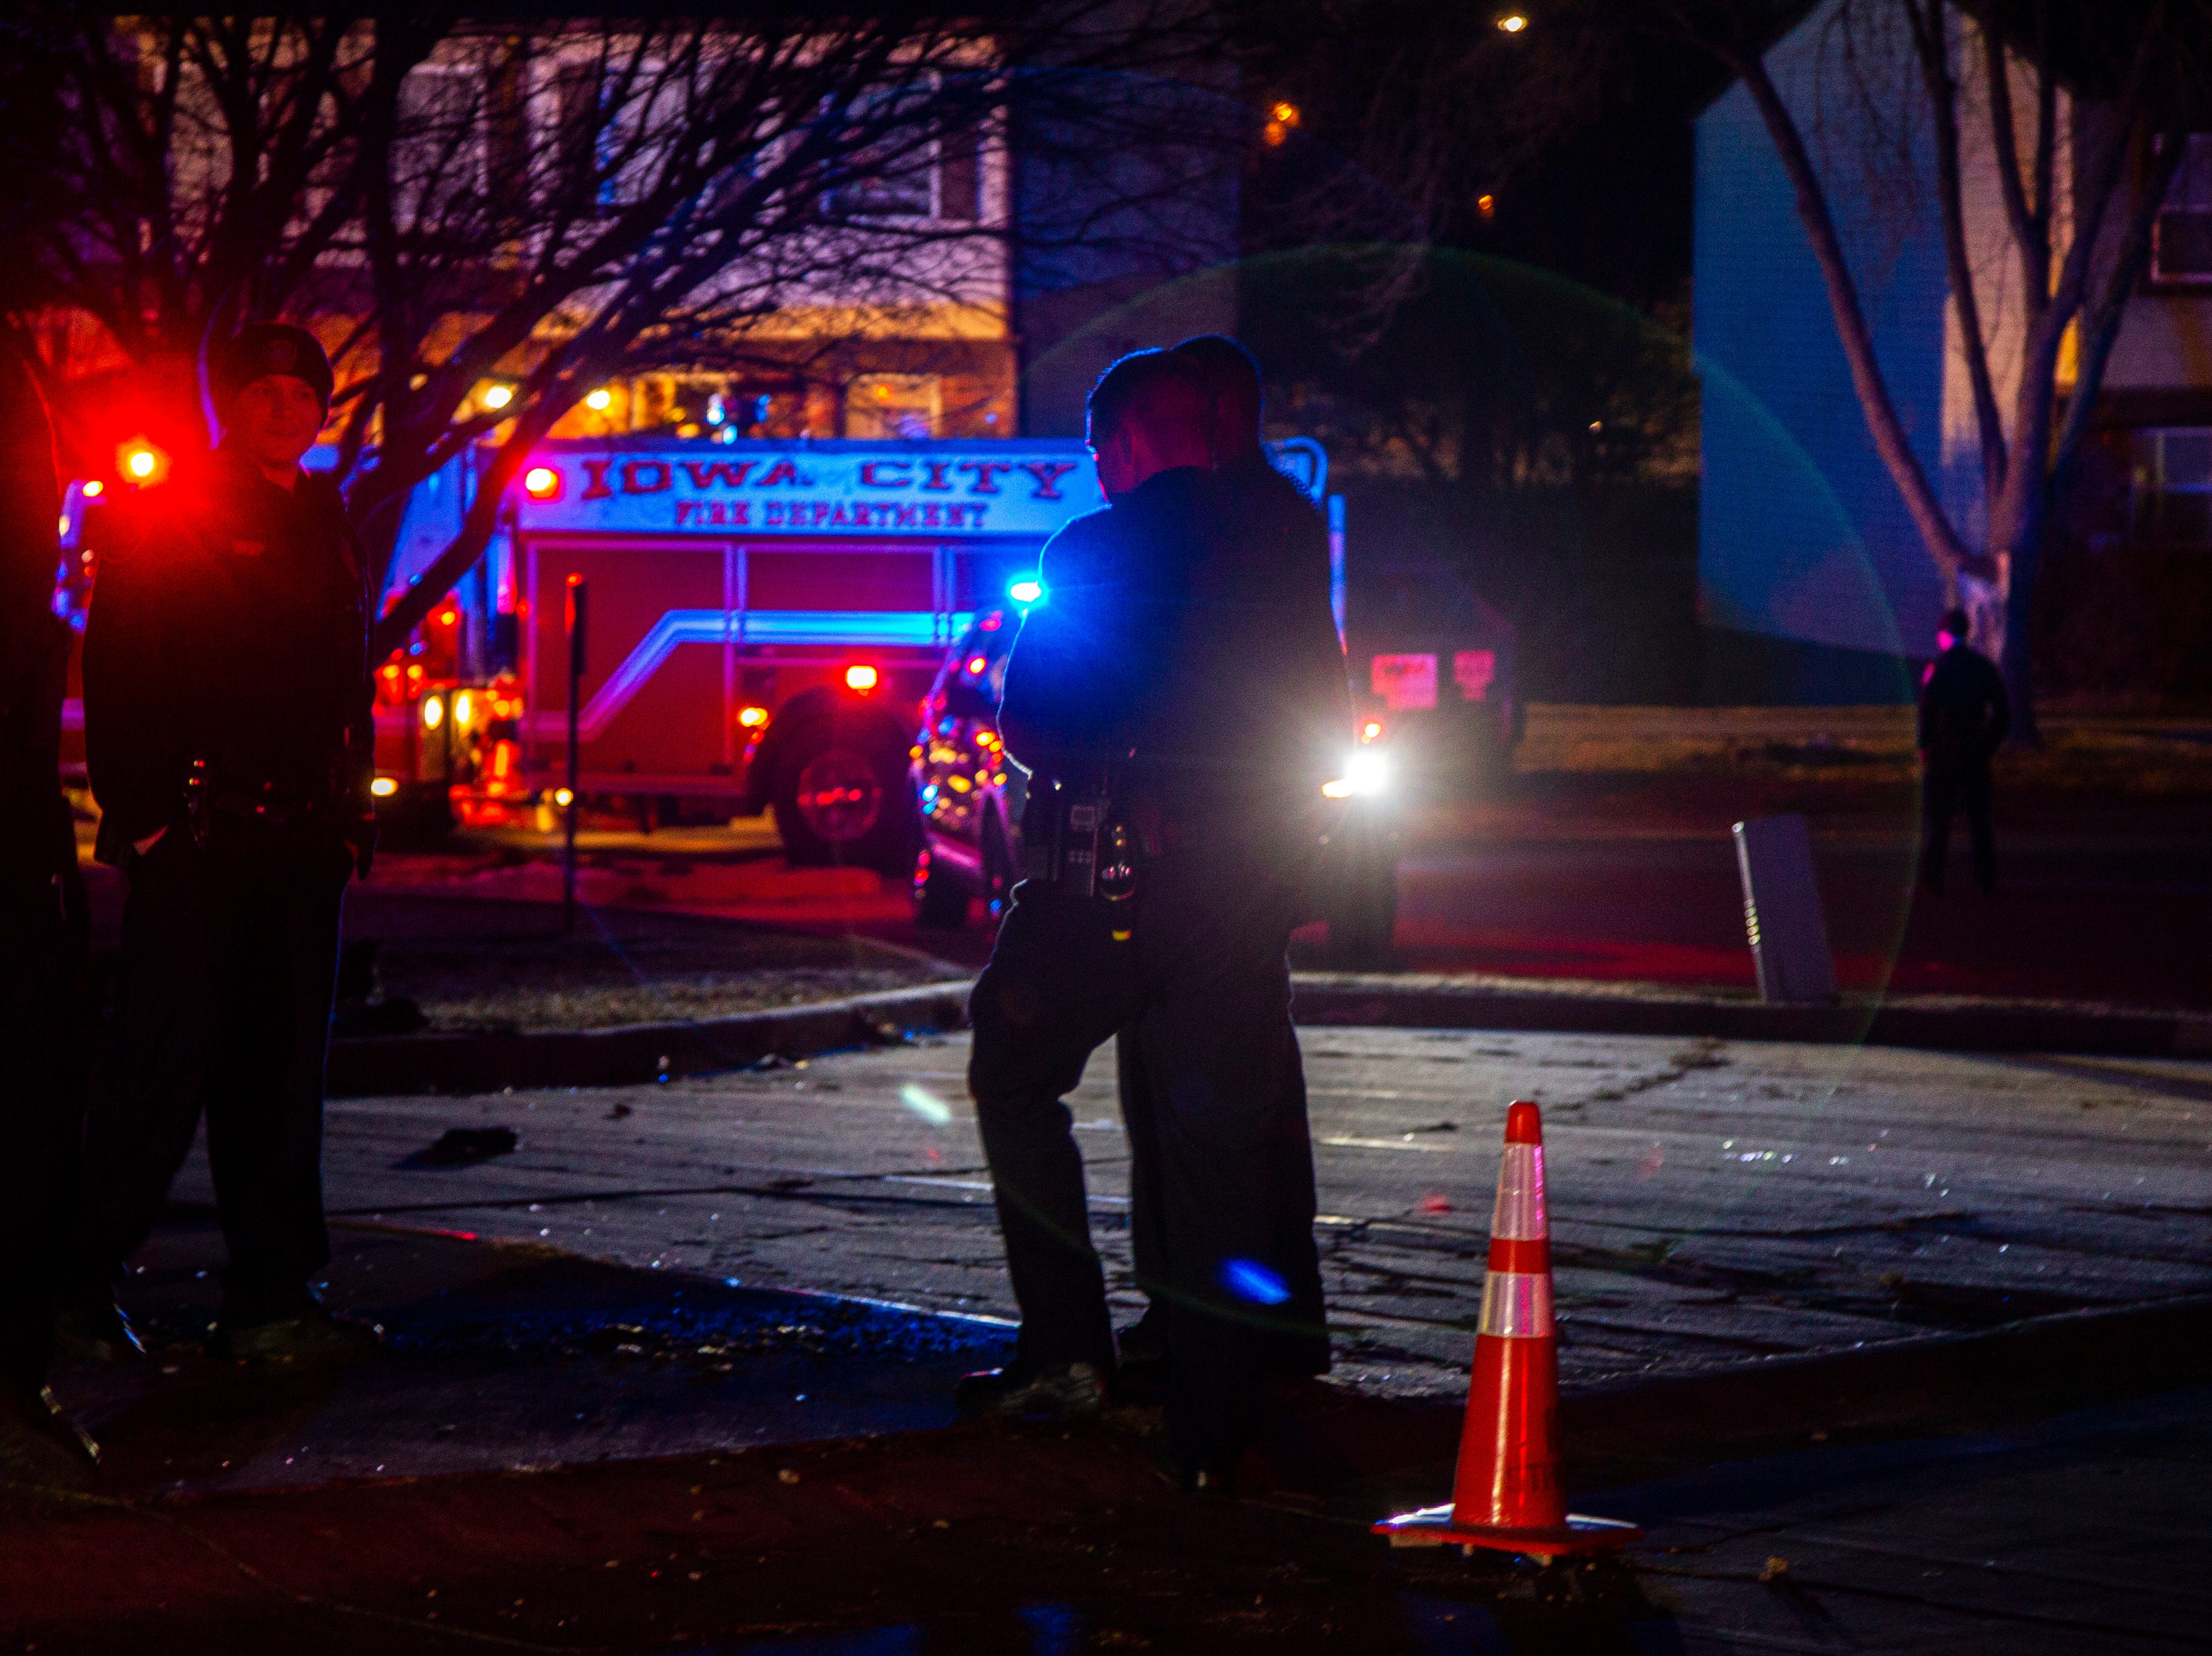 Iowa City and Coralville firefighters respond to a structure fire call on Tuesday, Dec. 18, 2018, along Clearwater Court on the west side of Iowa City.